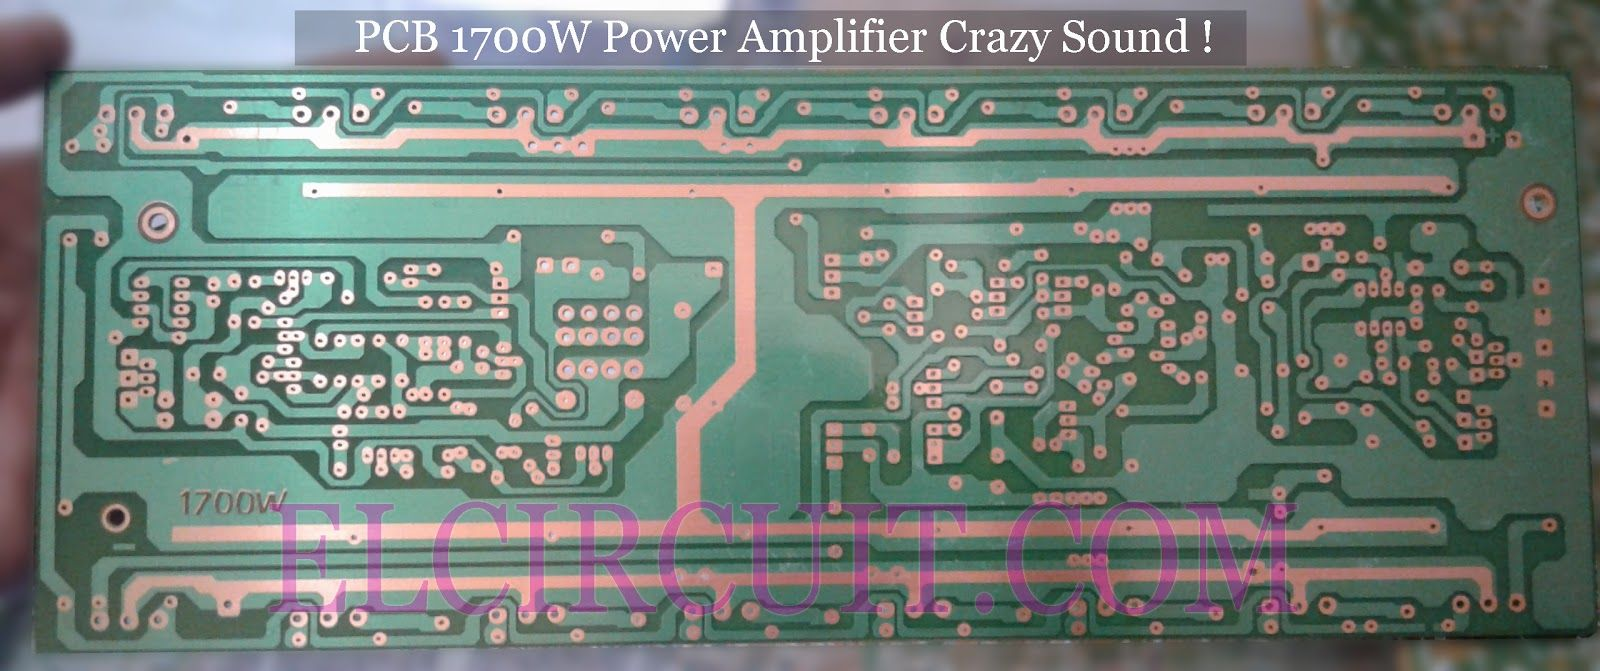 Audio Kreatif Layout Pcb Tda7294 2x100watt Amplificadores Tda7293audiopoweramplifier100watts Circuit Power Amplifier Crazy Sound 1700w